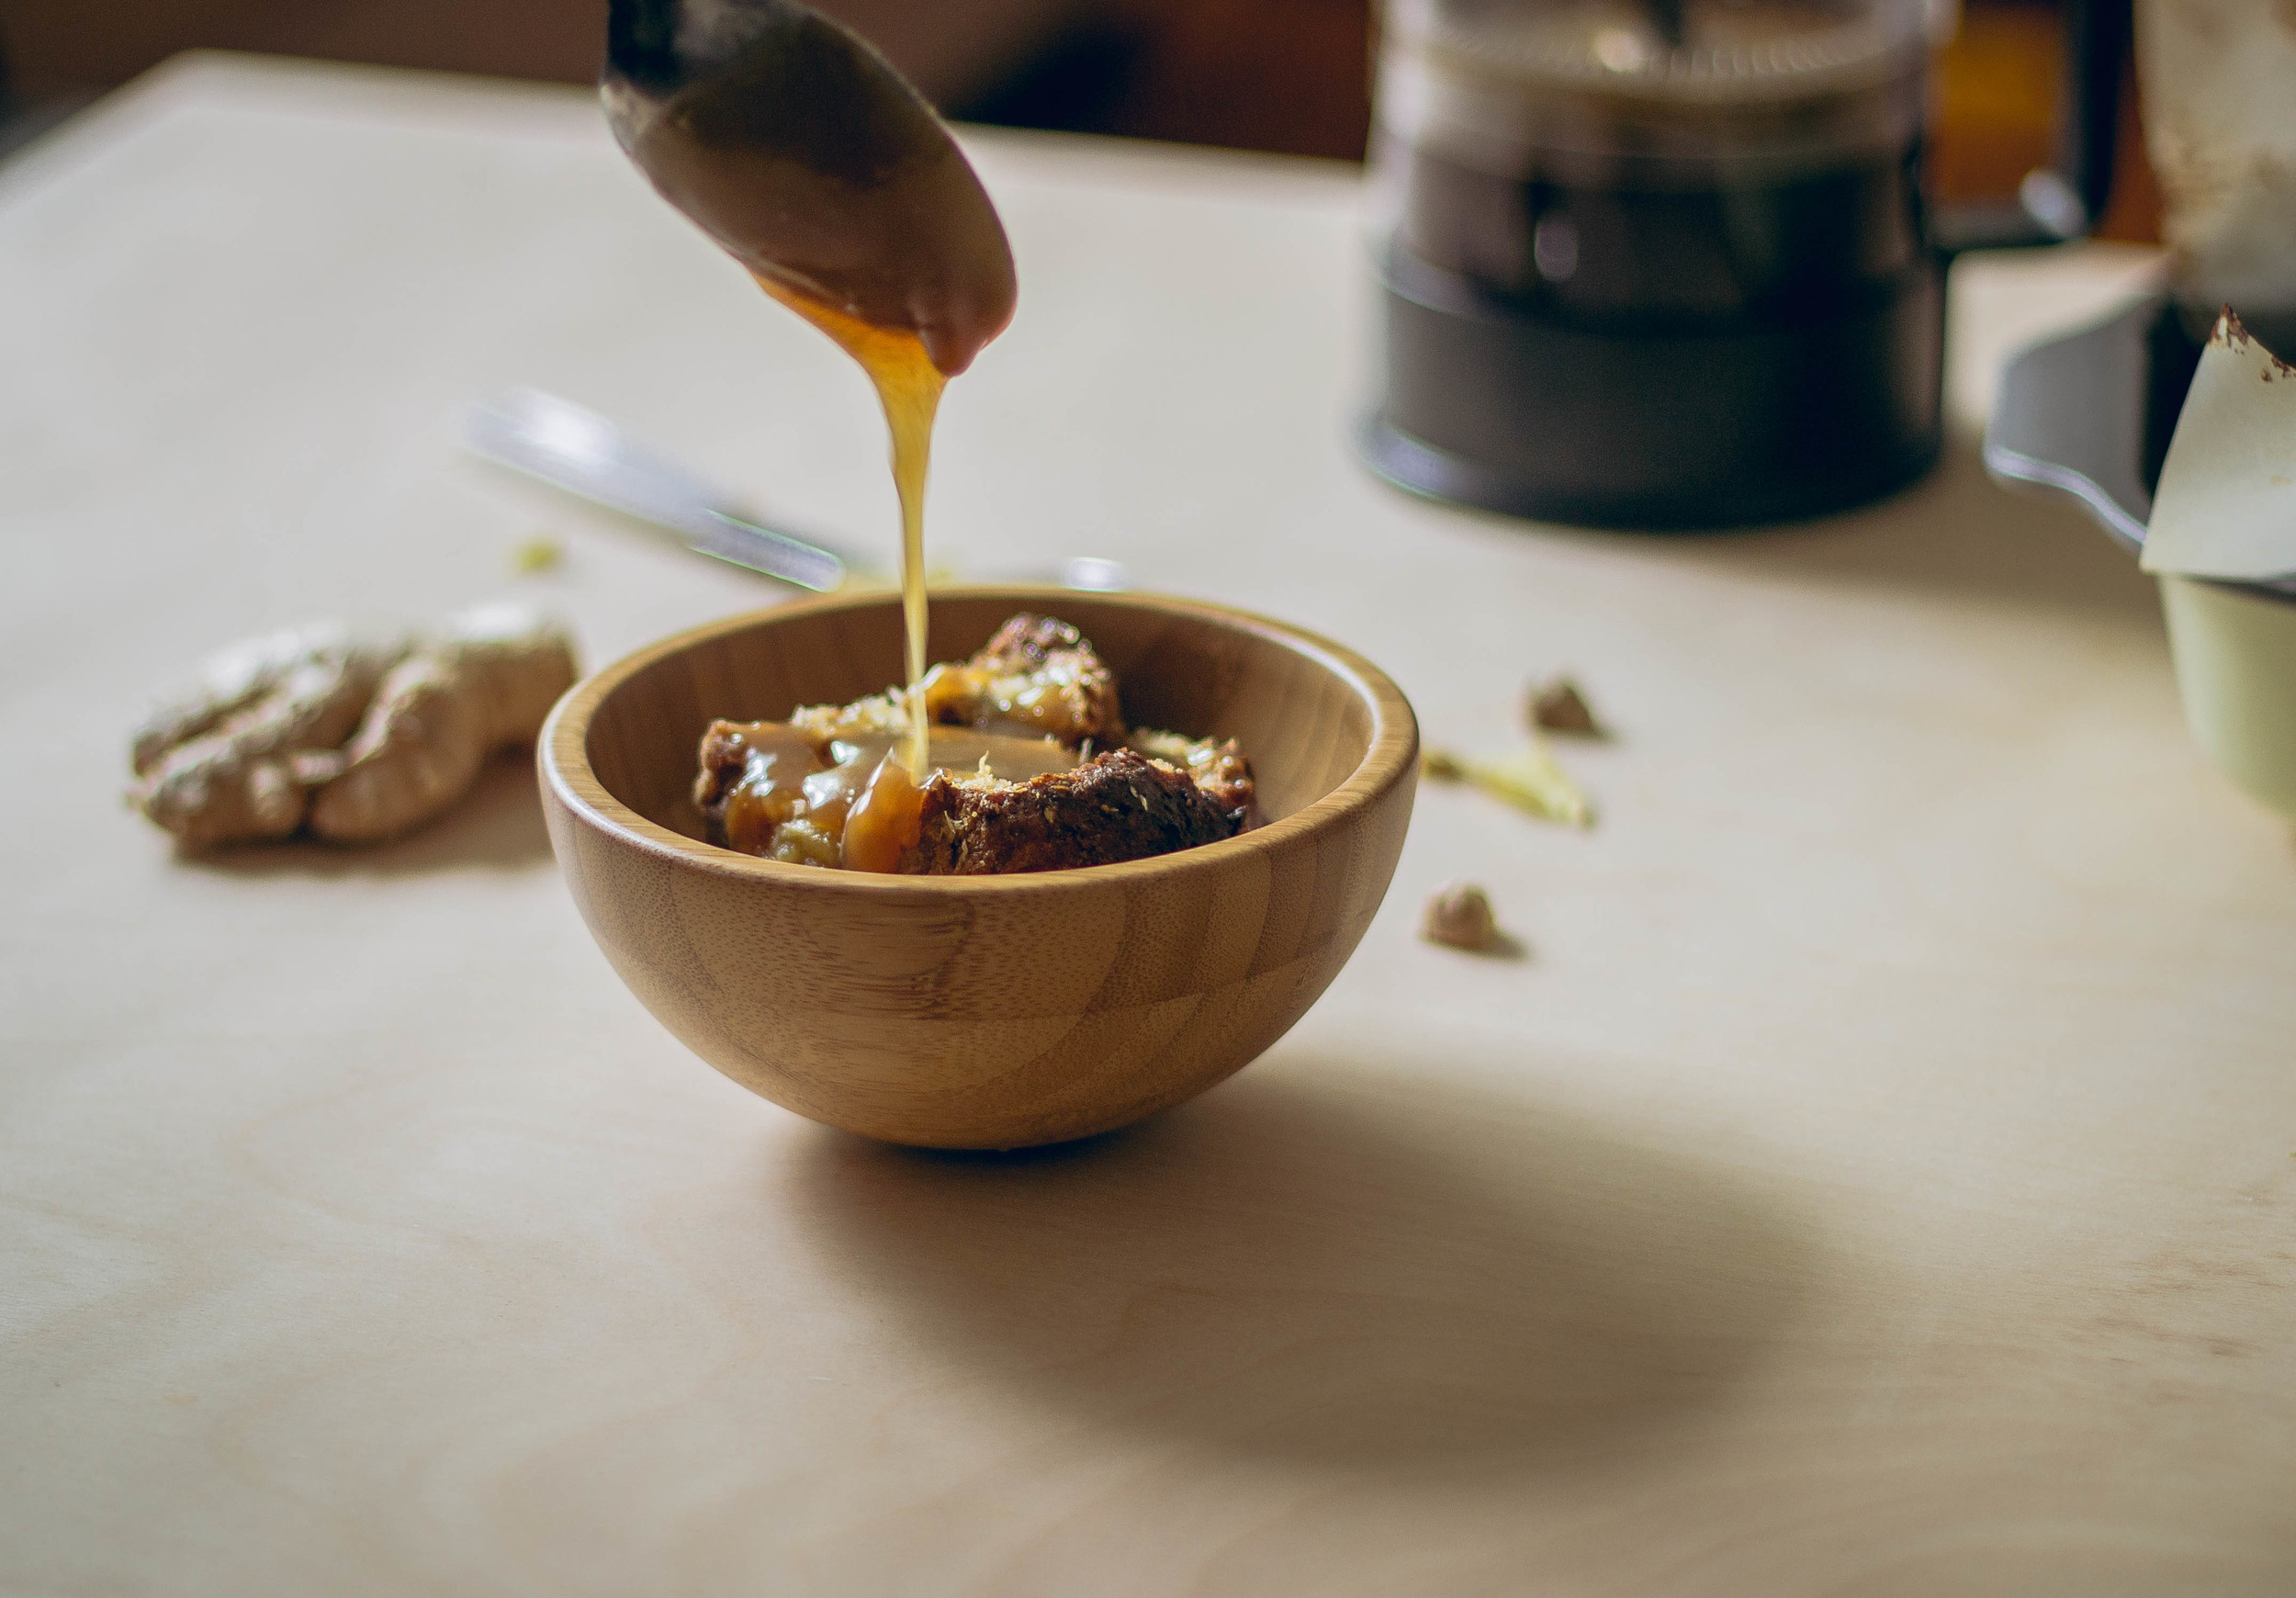 Ginger caramel sauce on bread pudding | by fit for the soul